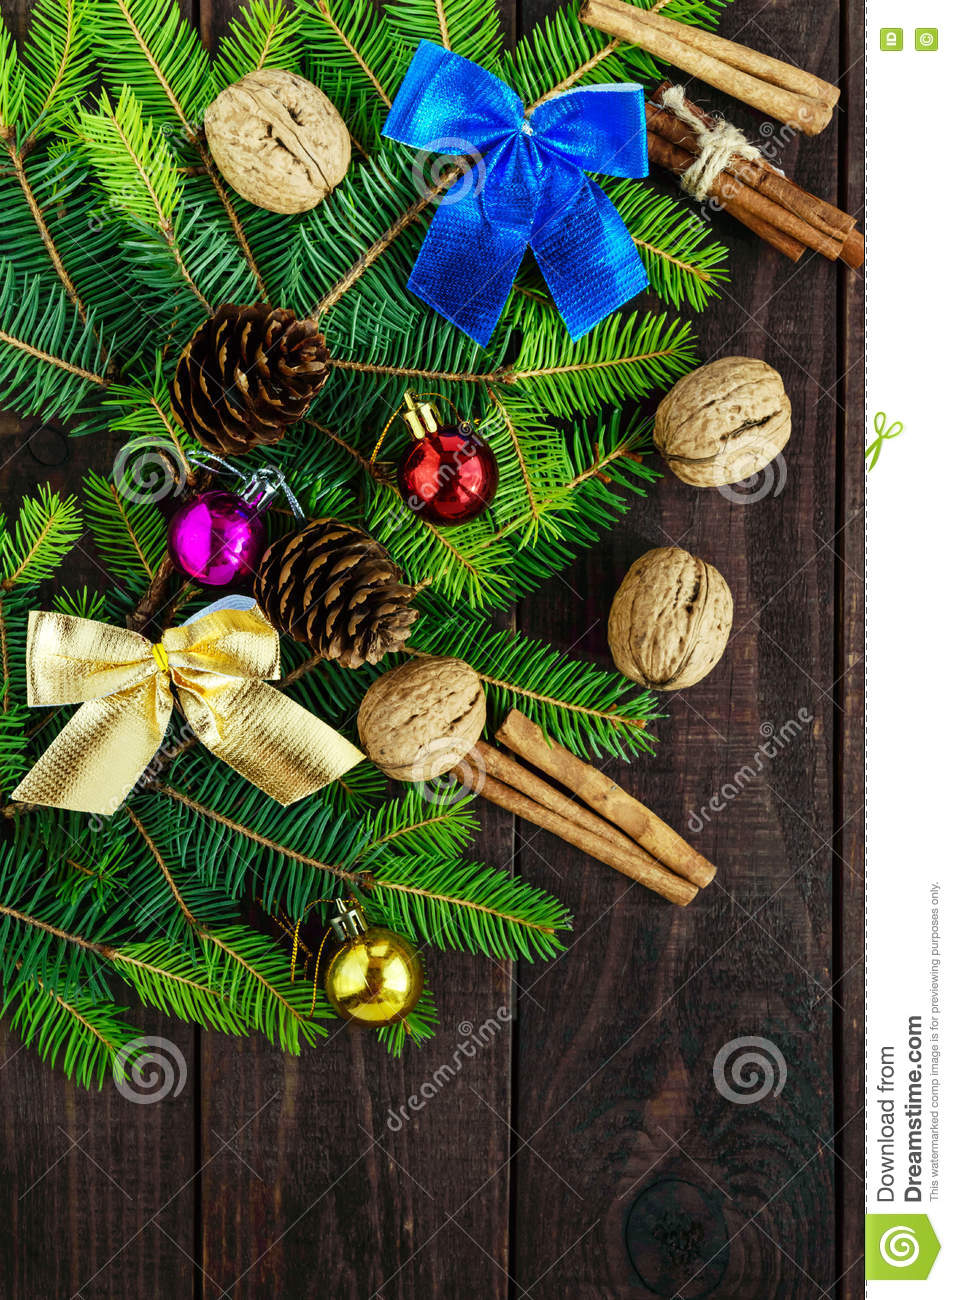 Green branch of fir, decorated with bright ribbons, balls, nuts, pine cones, cinnamon on dark wooden background.